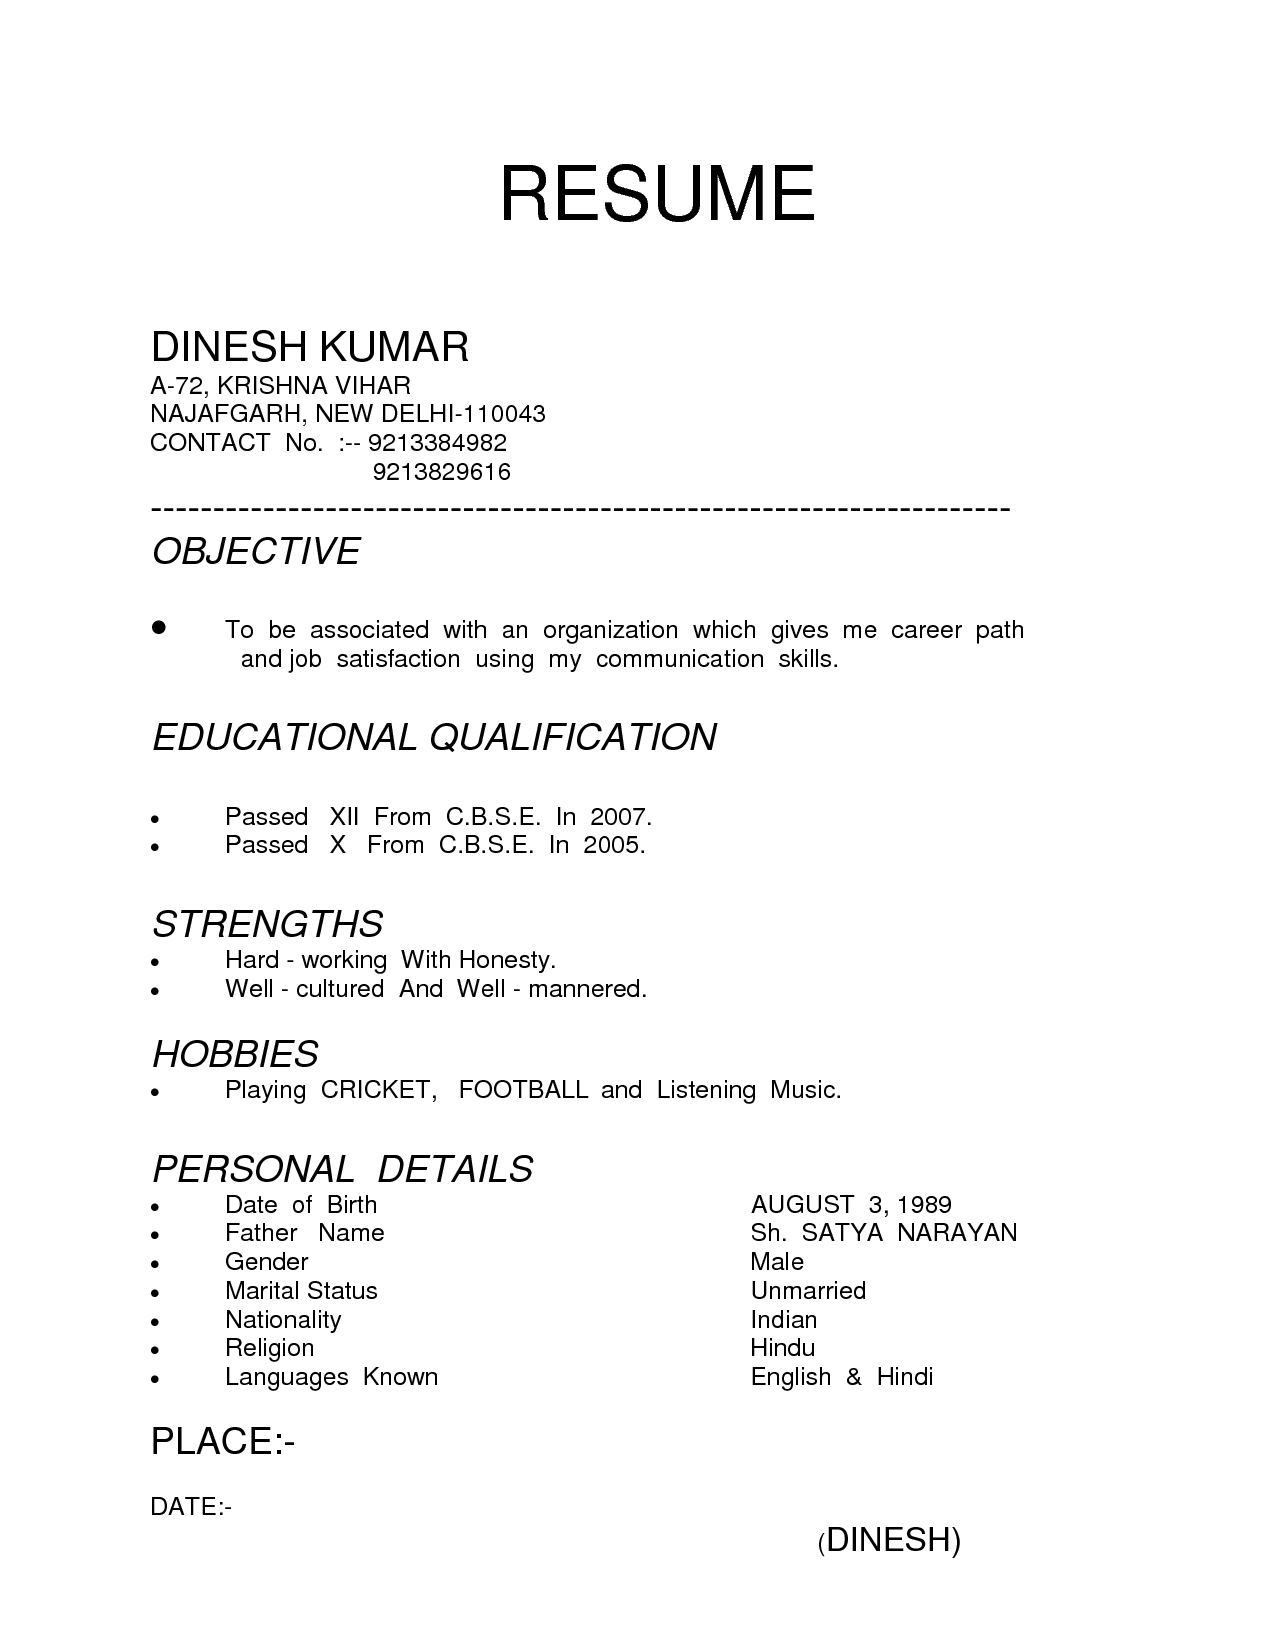 Kinds Of Resume Examples Resumeexamples ResumeExamplesFree